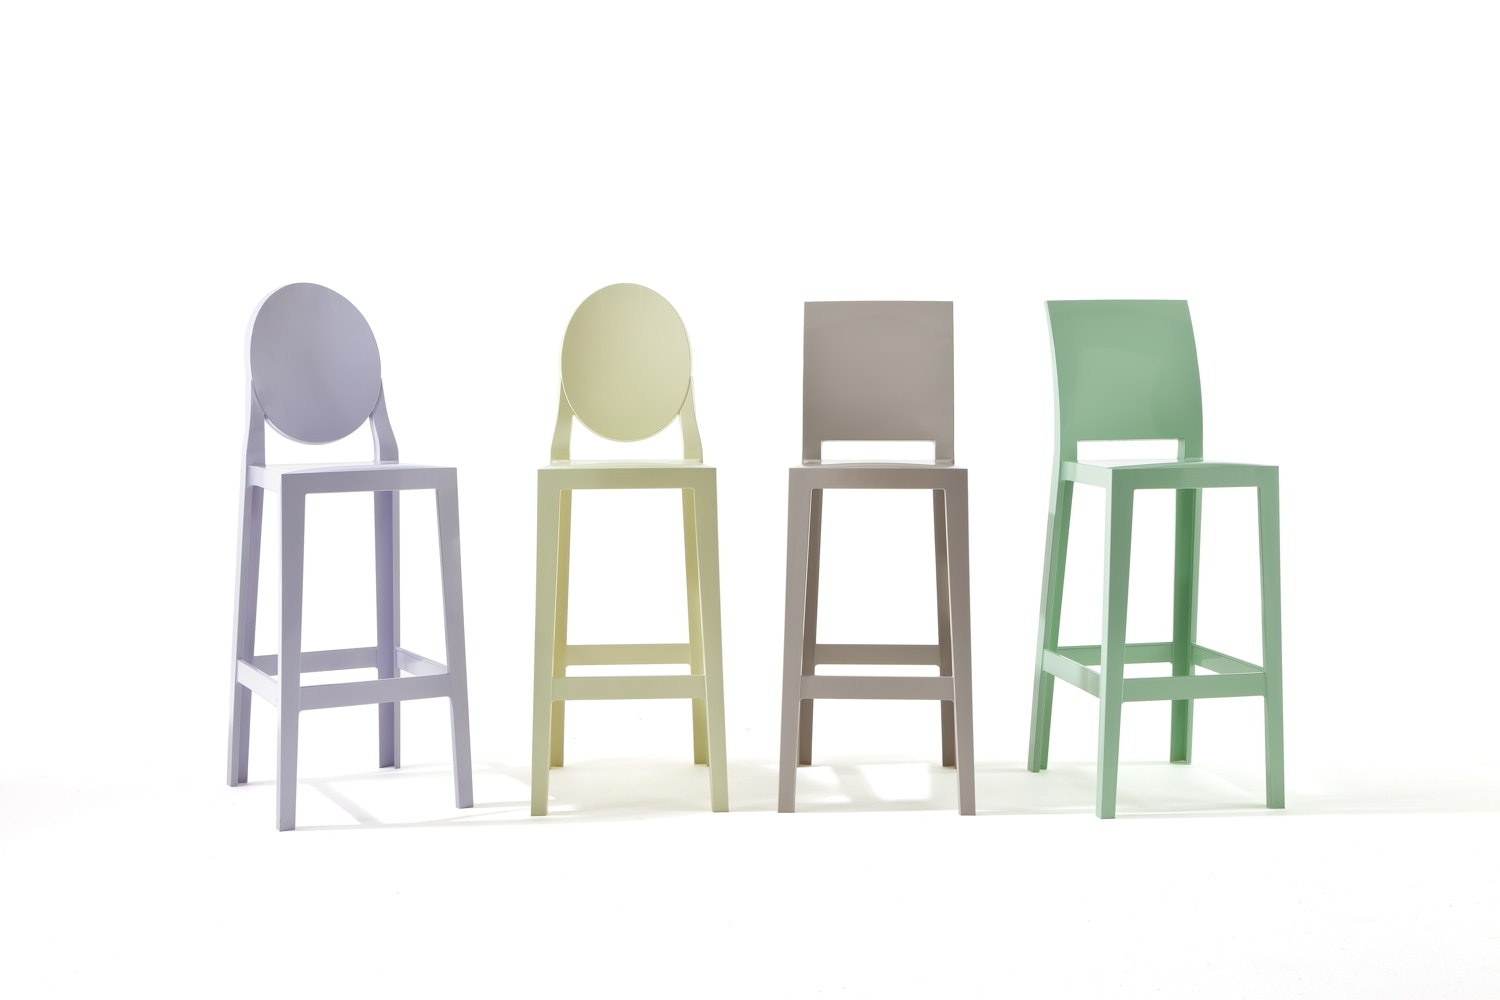 One More Low Stool by Philippe Starck for Kartell